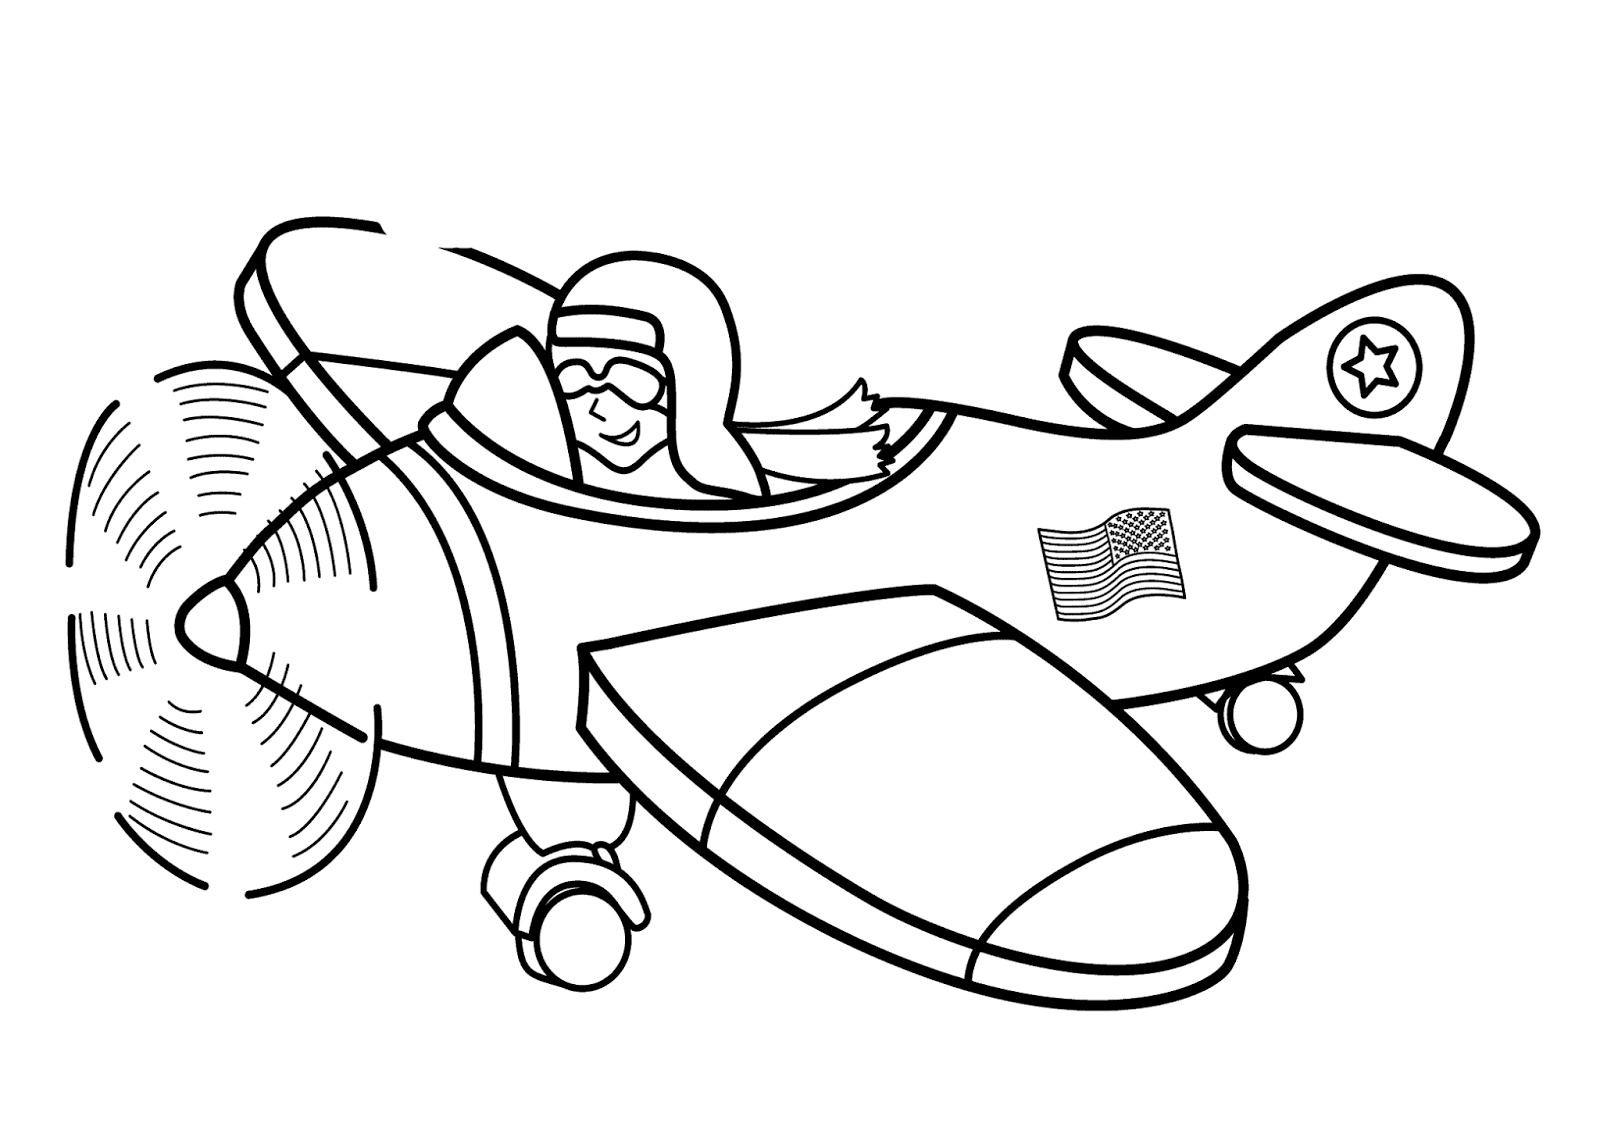 Printable Airplane Coloring Pages #1